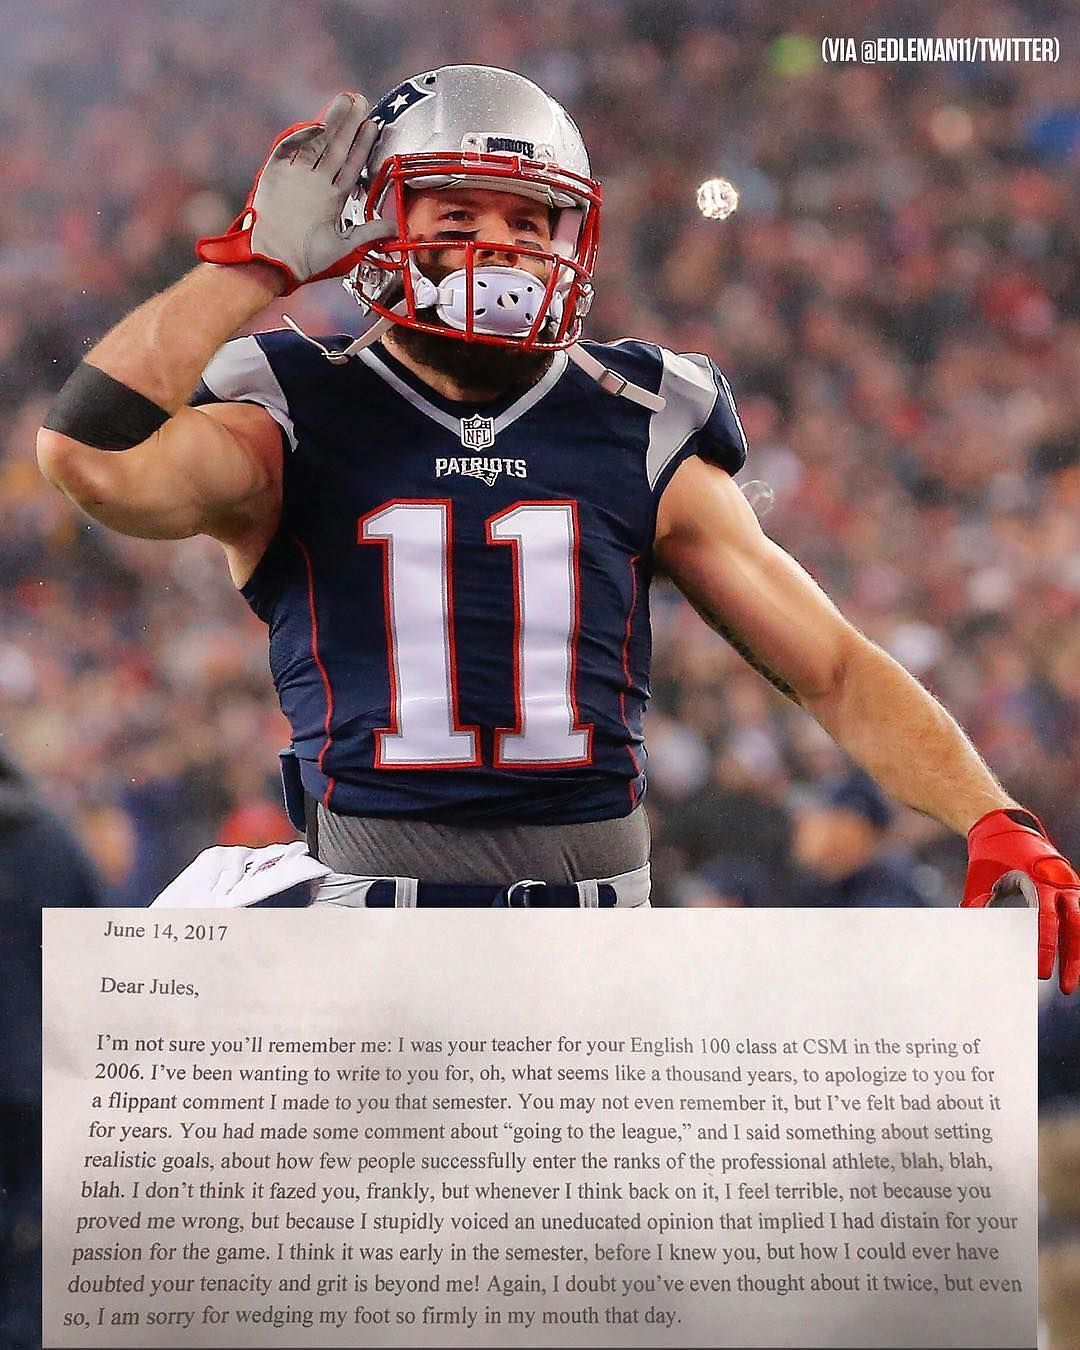 Julian Edelman S English Teacher Once Doubted He D Make The Nfl And Sent Him An Apology Letter 11 Years Later Nfl English Teacher Teacher